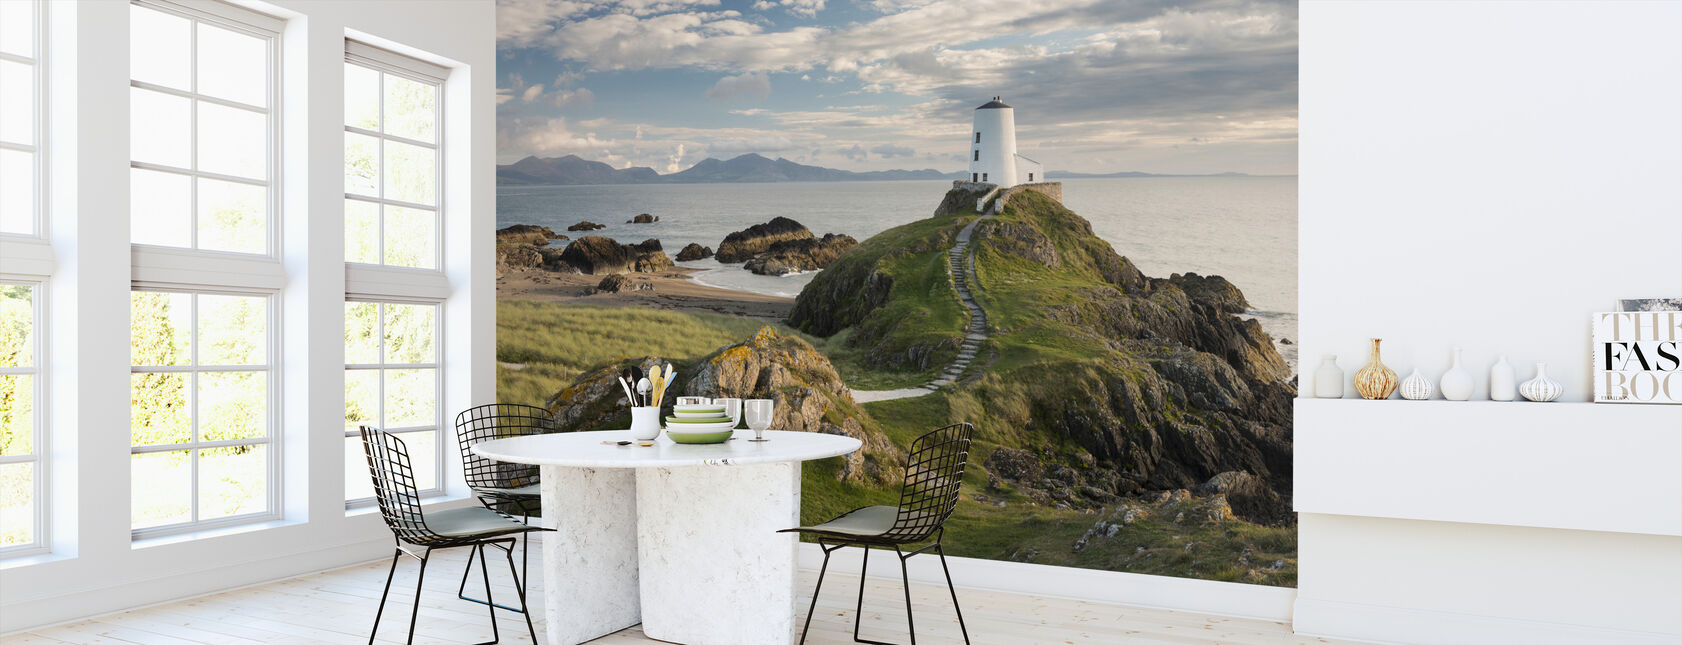 Llanddwyn Island Lighthouse - Wallpaper - Kitchen